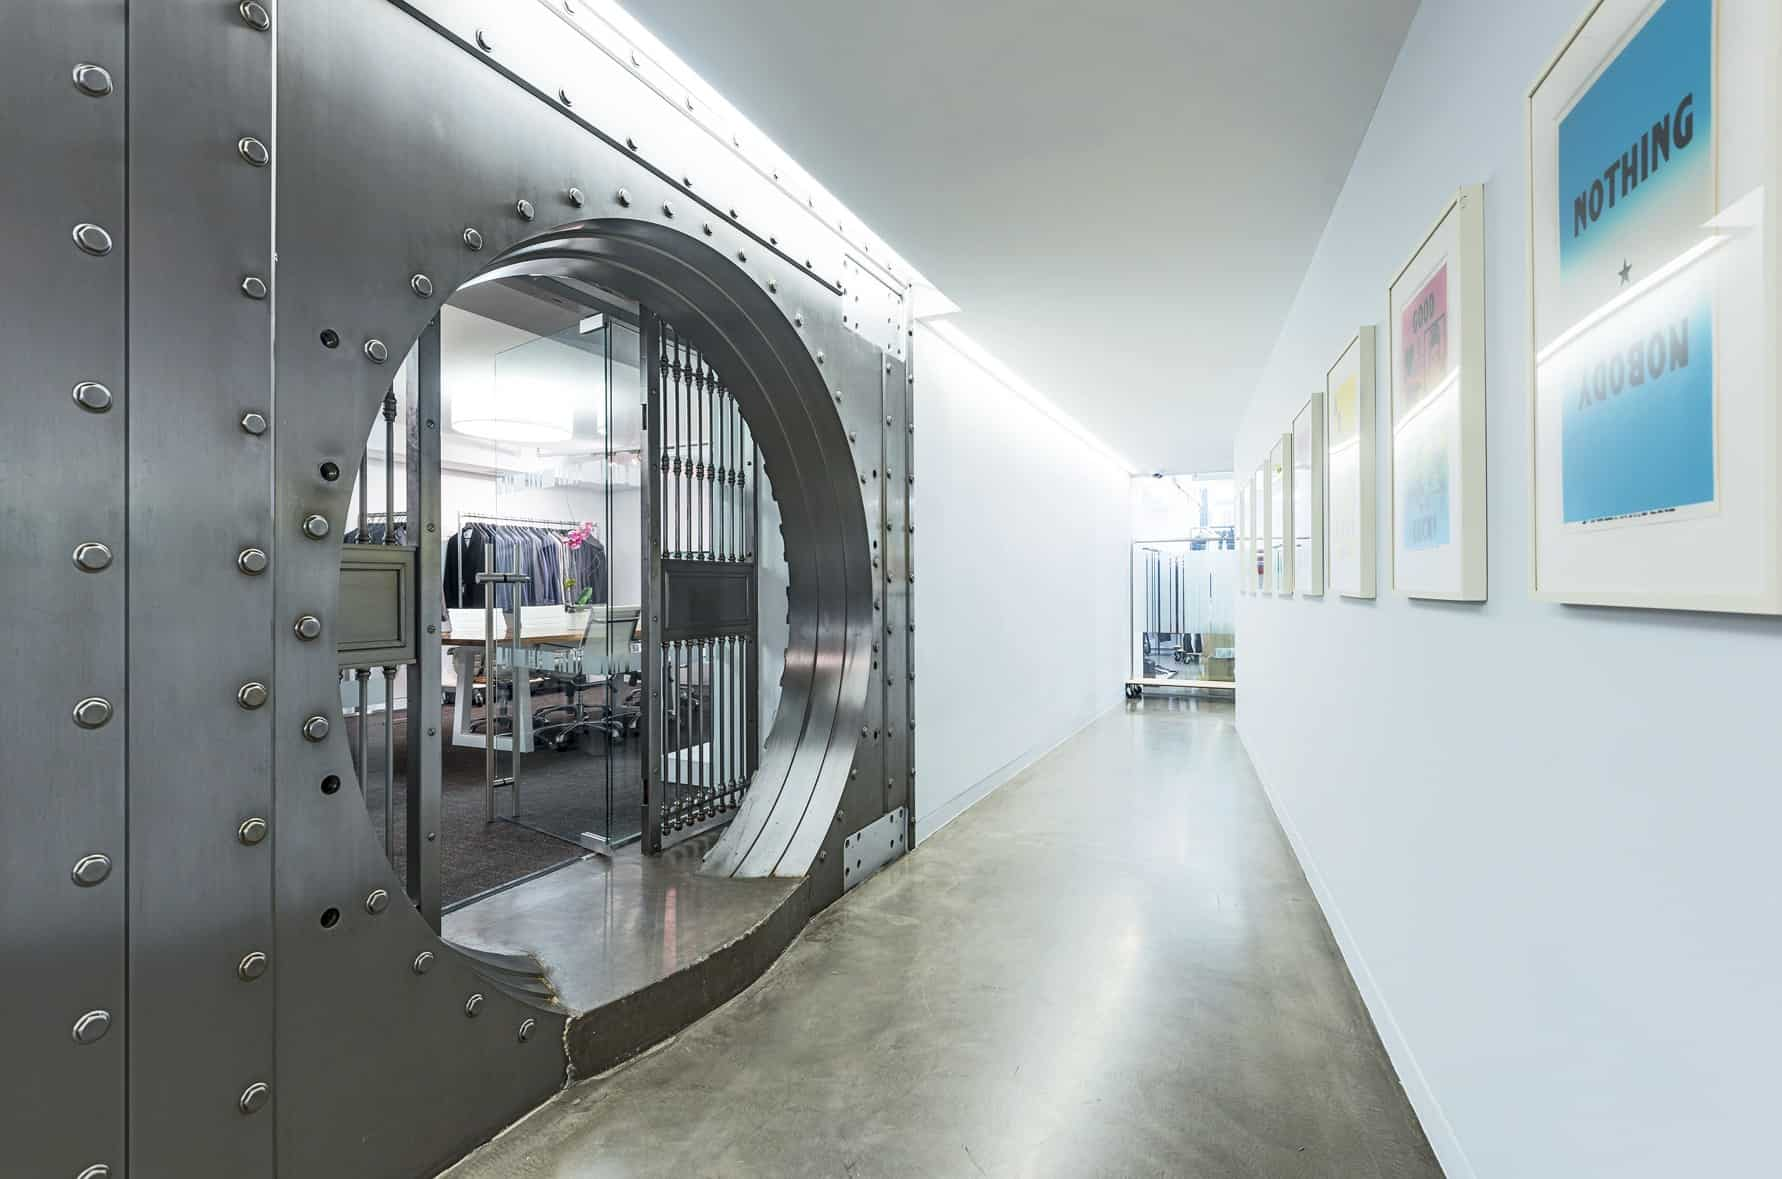 Unusual meeting space: bank vault